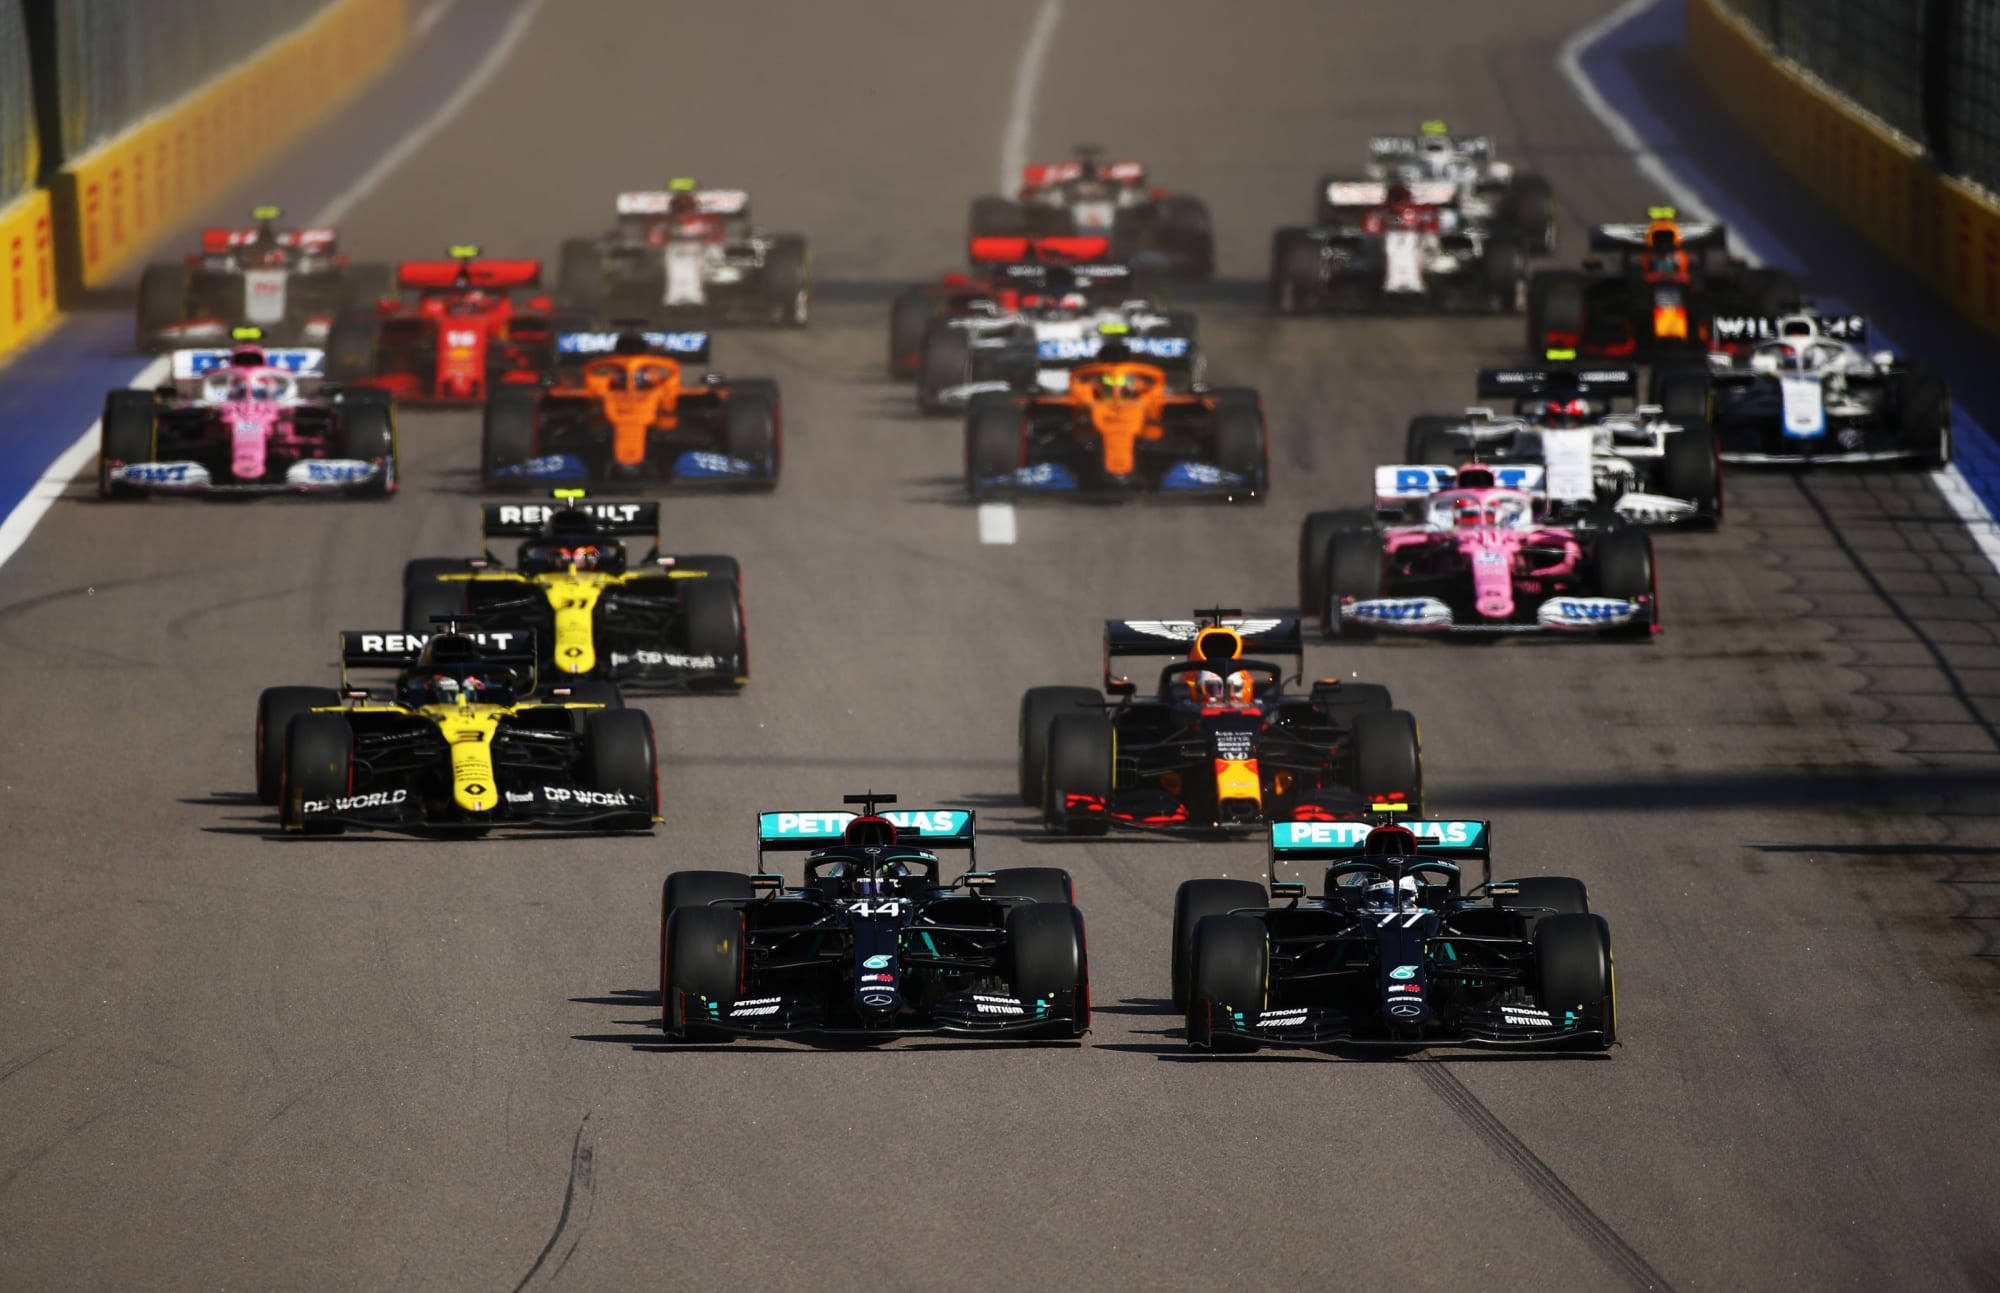 Formula 1: What remains unknown about the 2021 driver lineup